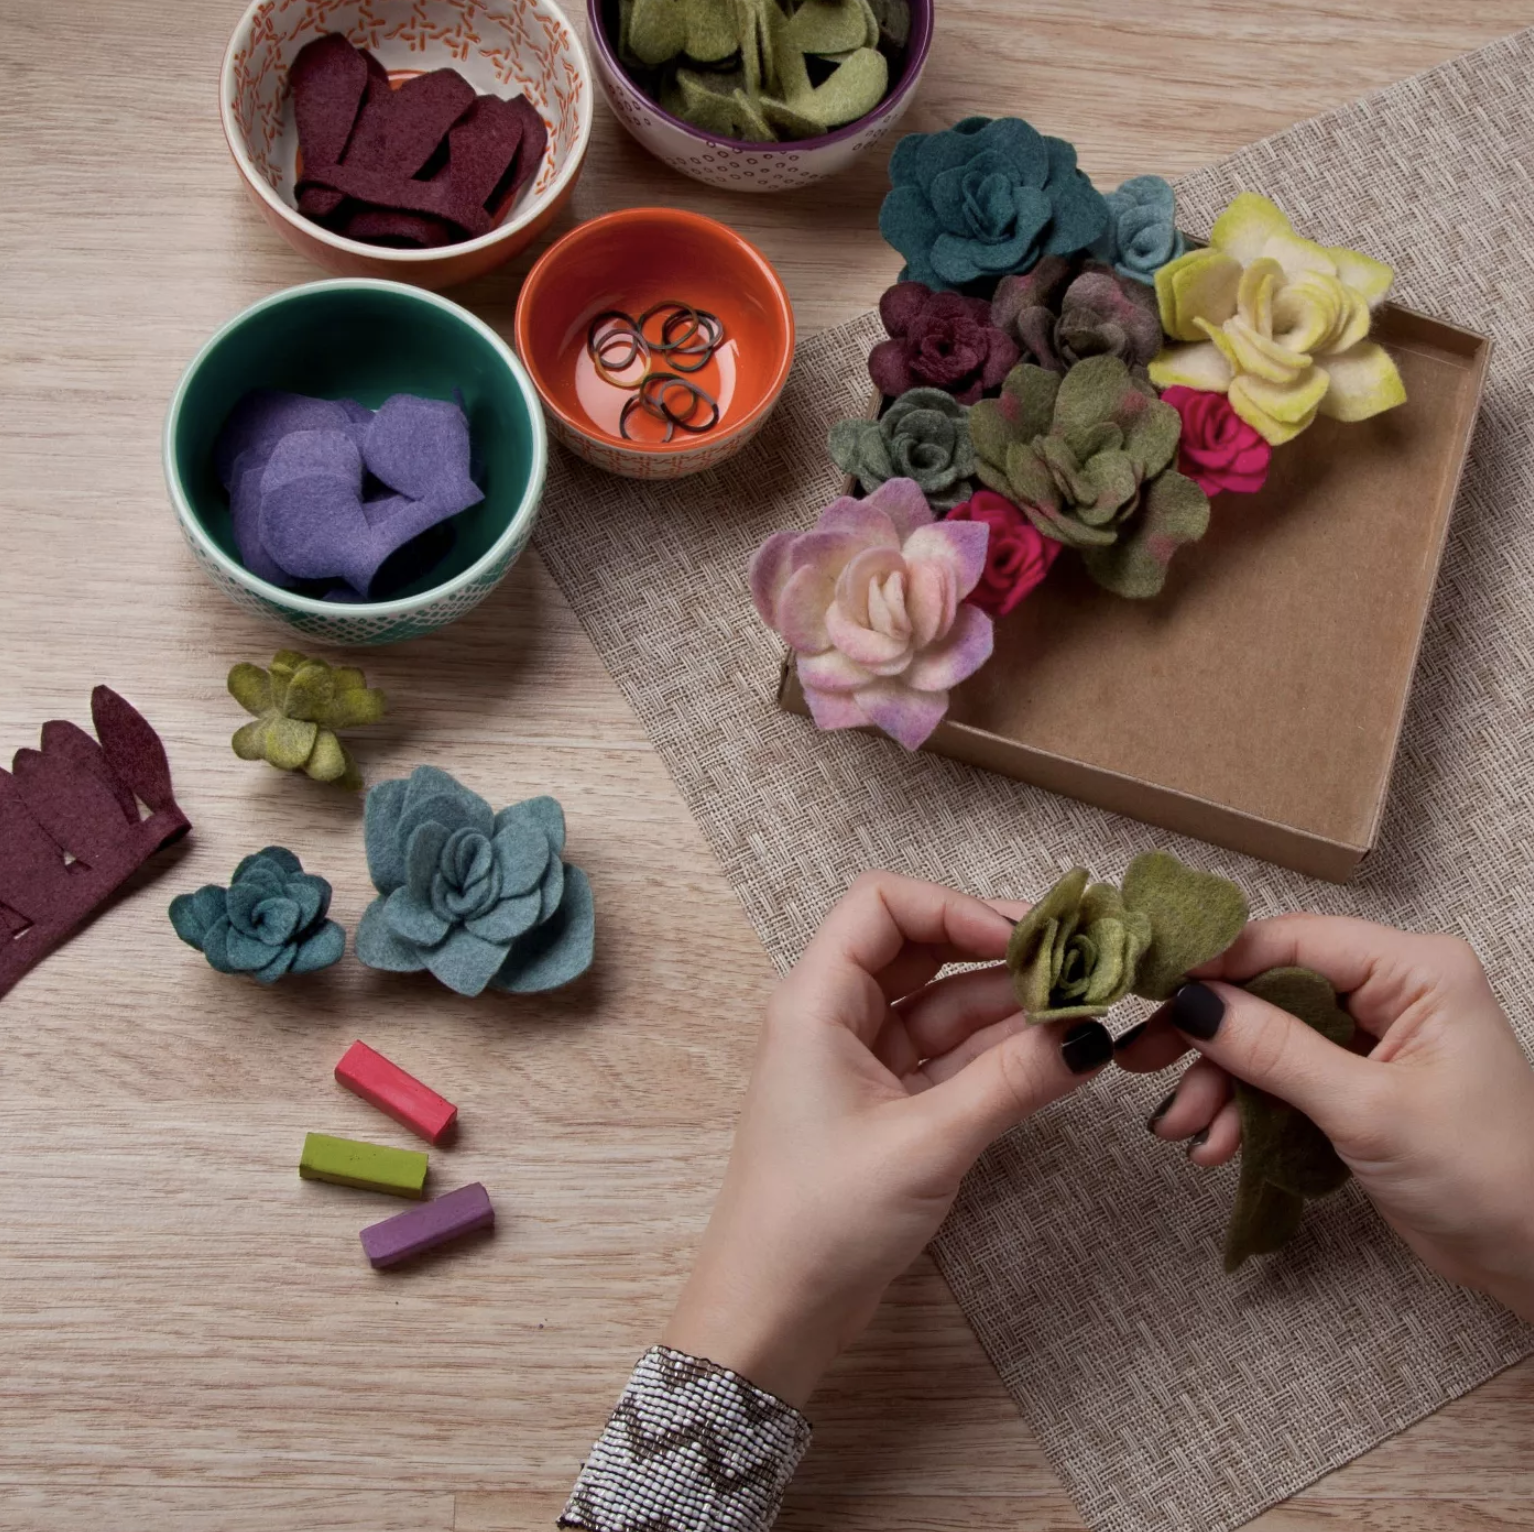 A model's hands holding green felt pieces that look like succulent leaves. More completed felt succulents are sitting near on a table near the hand.